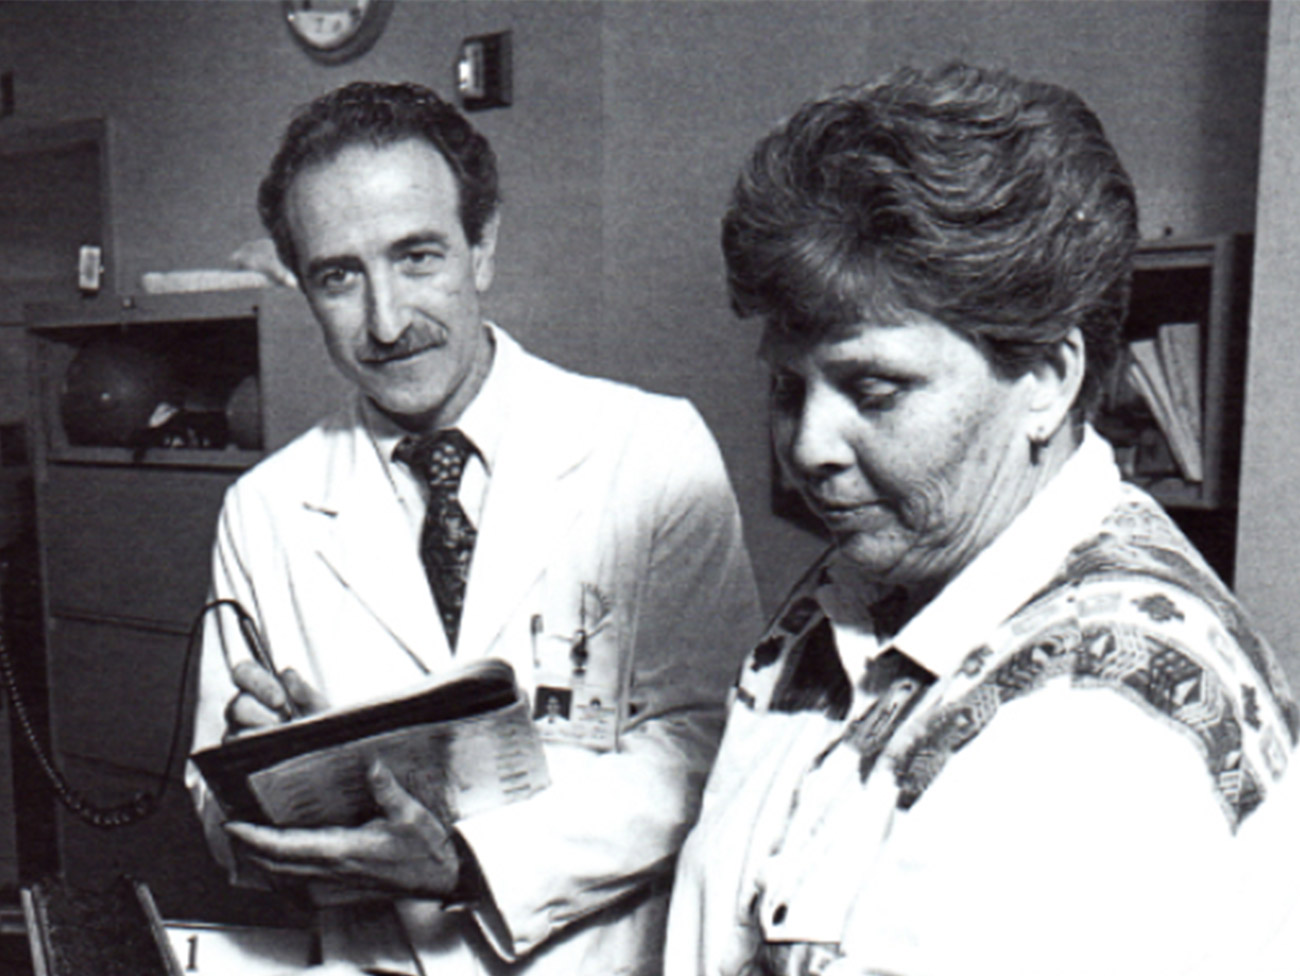 Peter Estacio, MD working with a patient